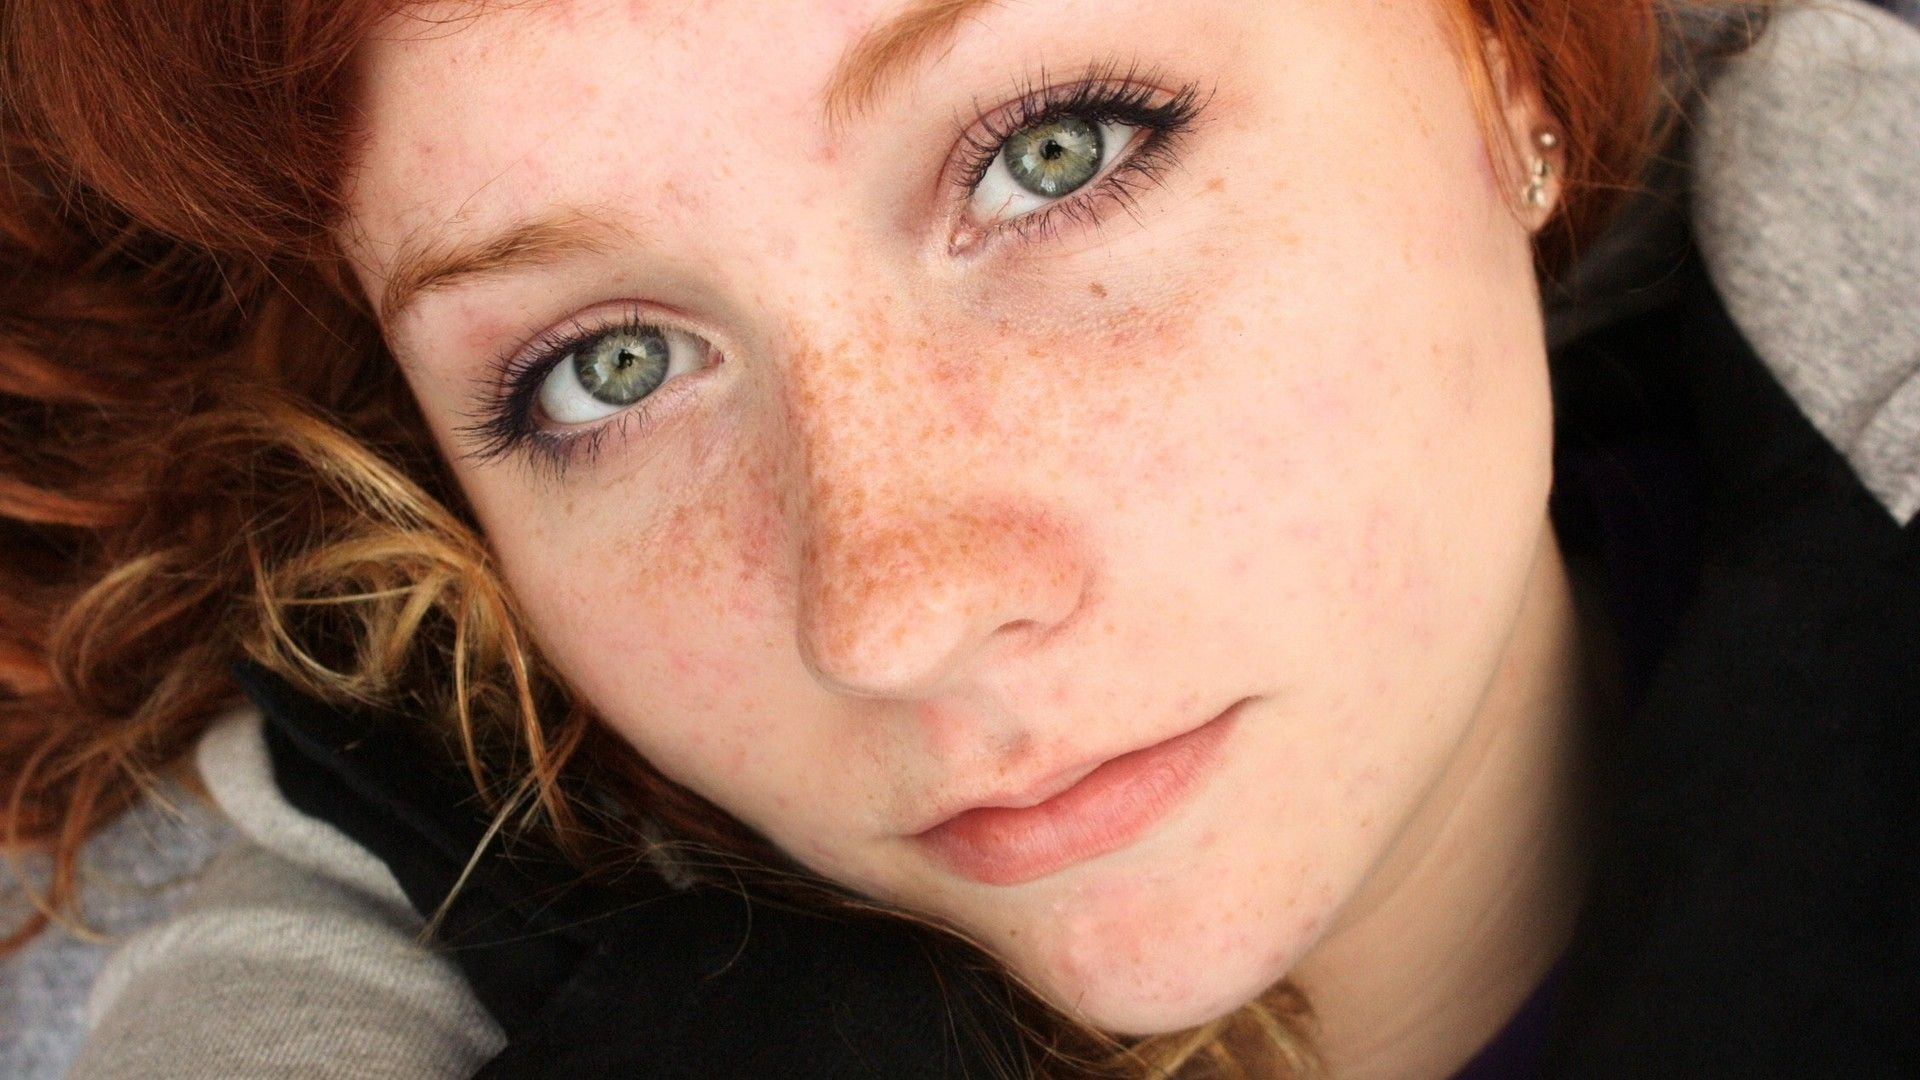 Women Models Freckles Green Eyes Faces Teens | Freckles And Fair intended for Makeup For Redheads With Green Eyes And Freckles